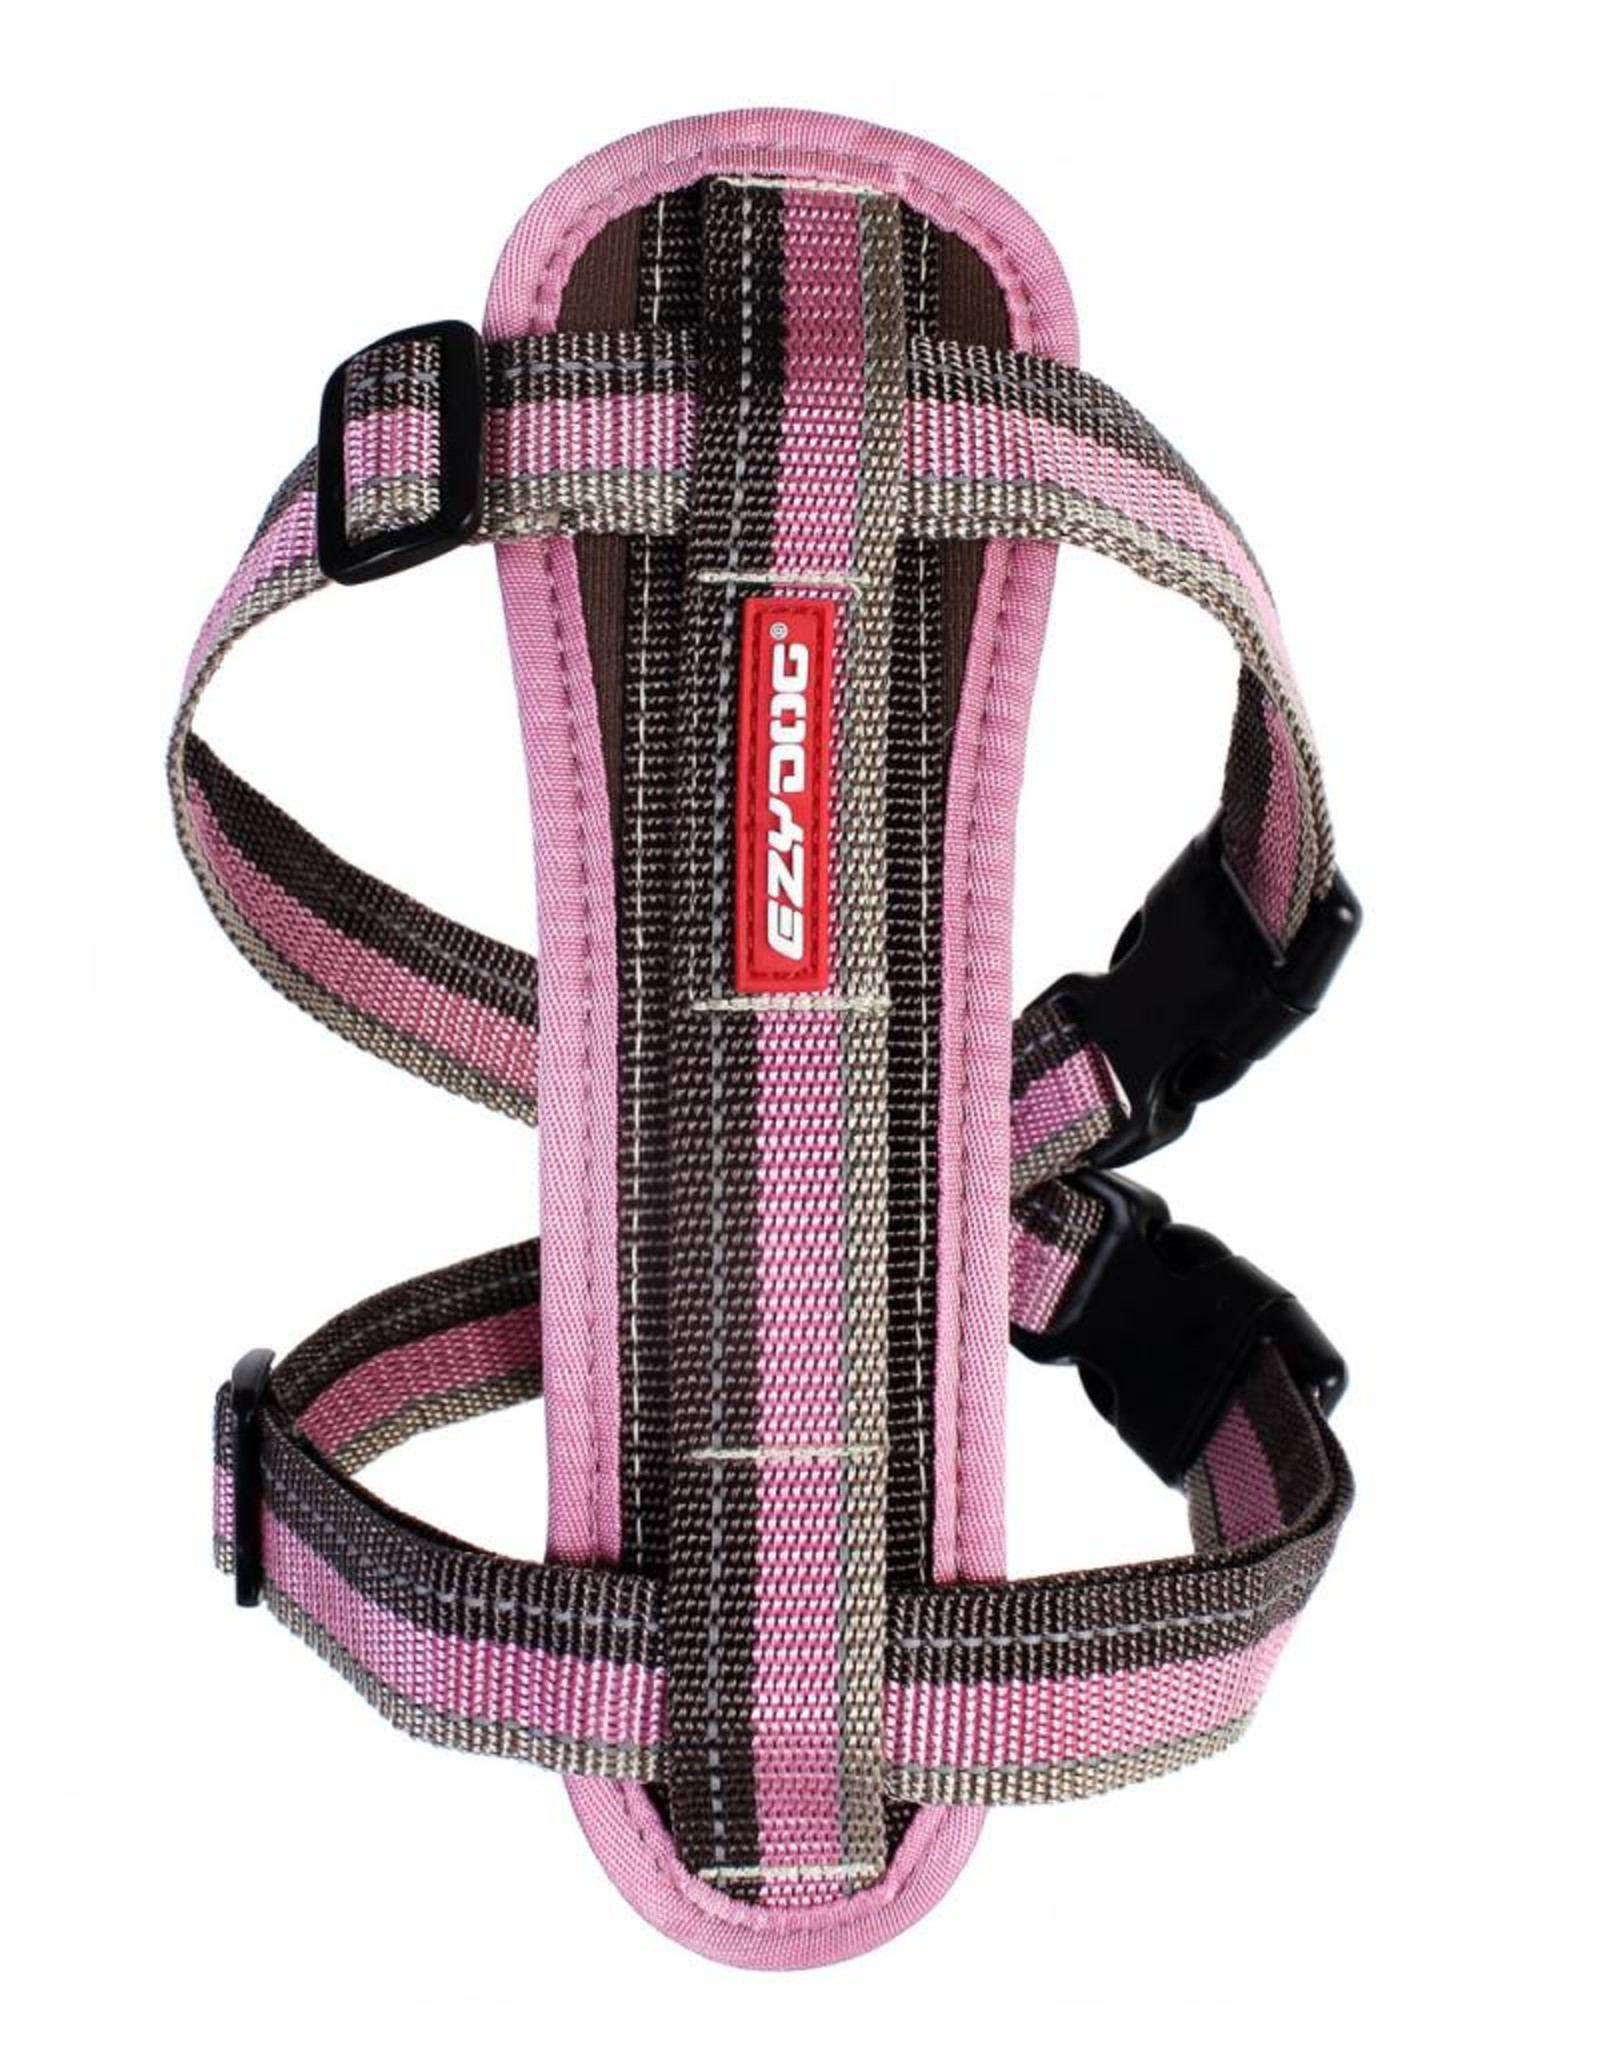 EzyDog Chest Plate Dog Harness with Seat Belt Loop, Candy Stripe